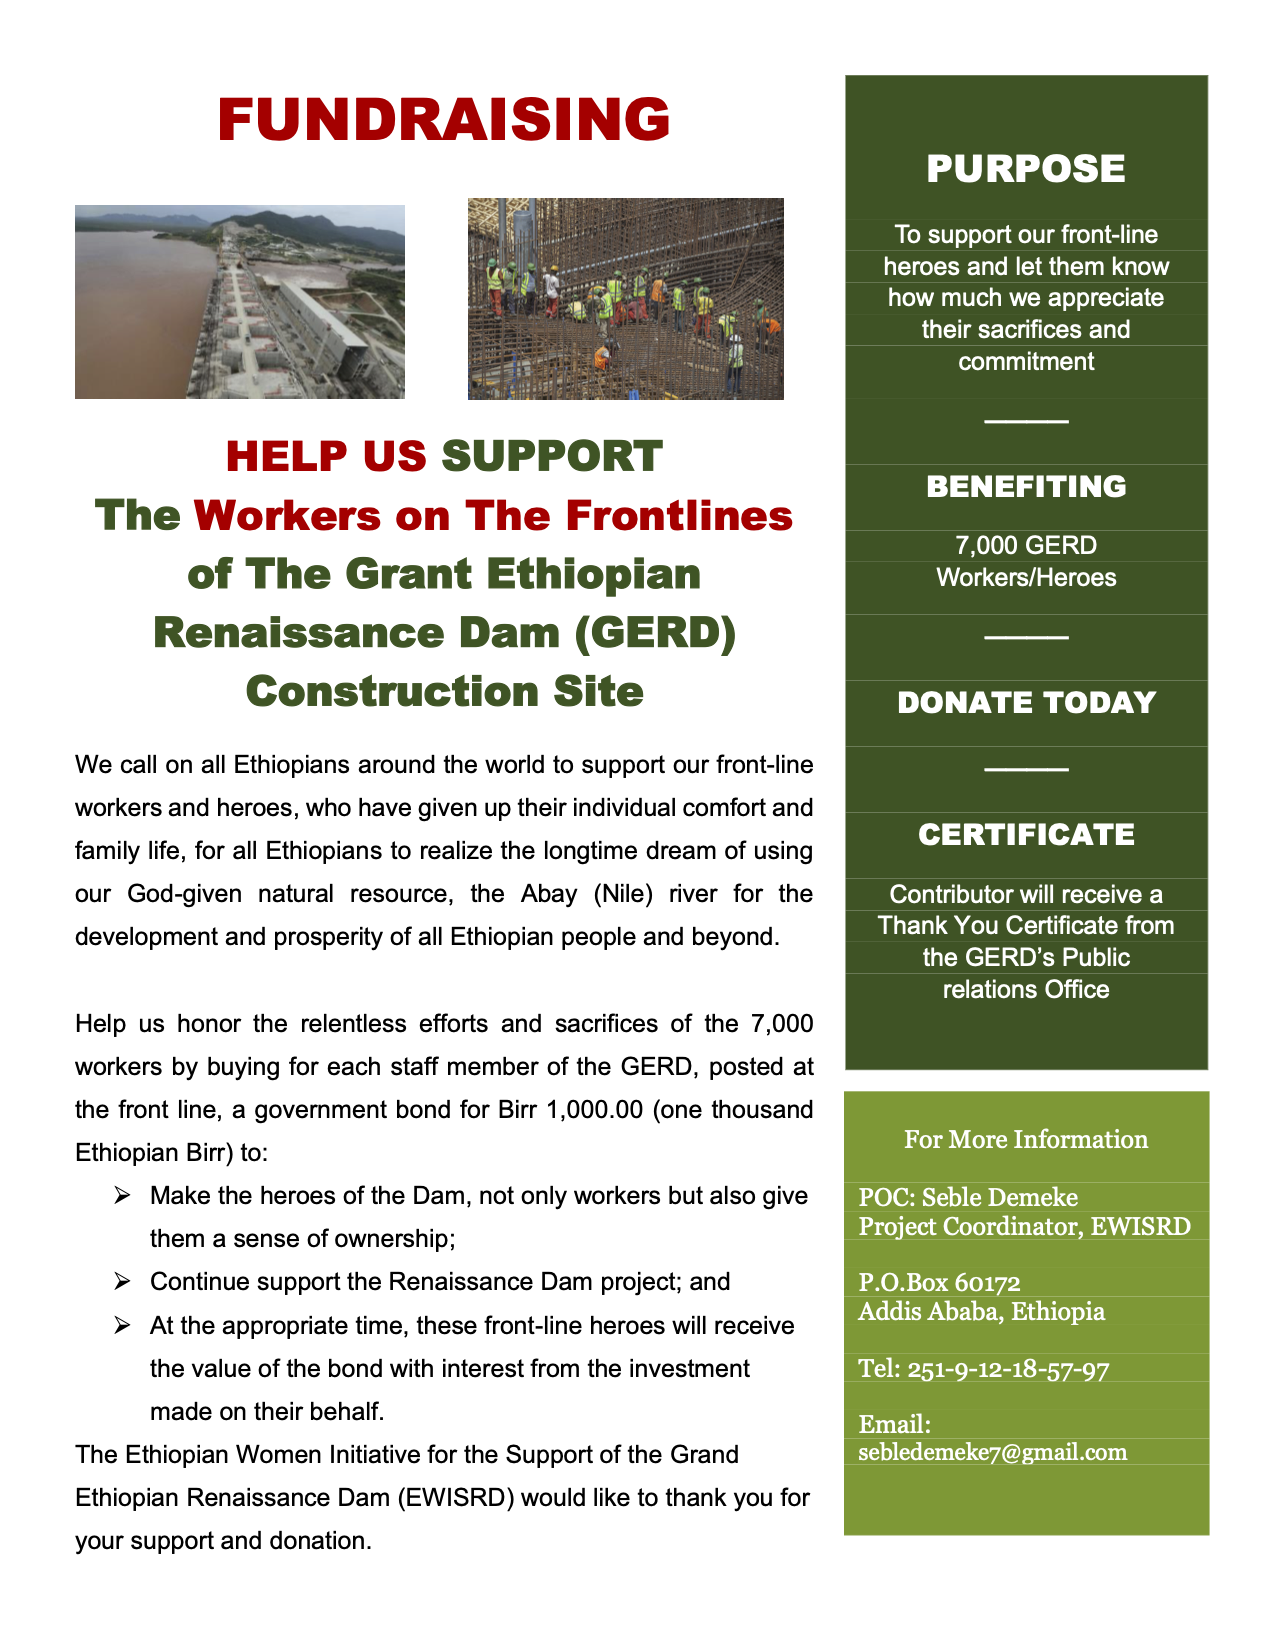 Help US Support Workers on the Frontlines of GERD.